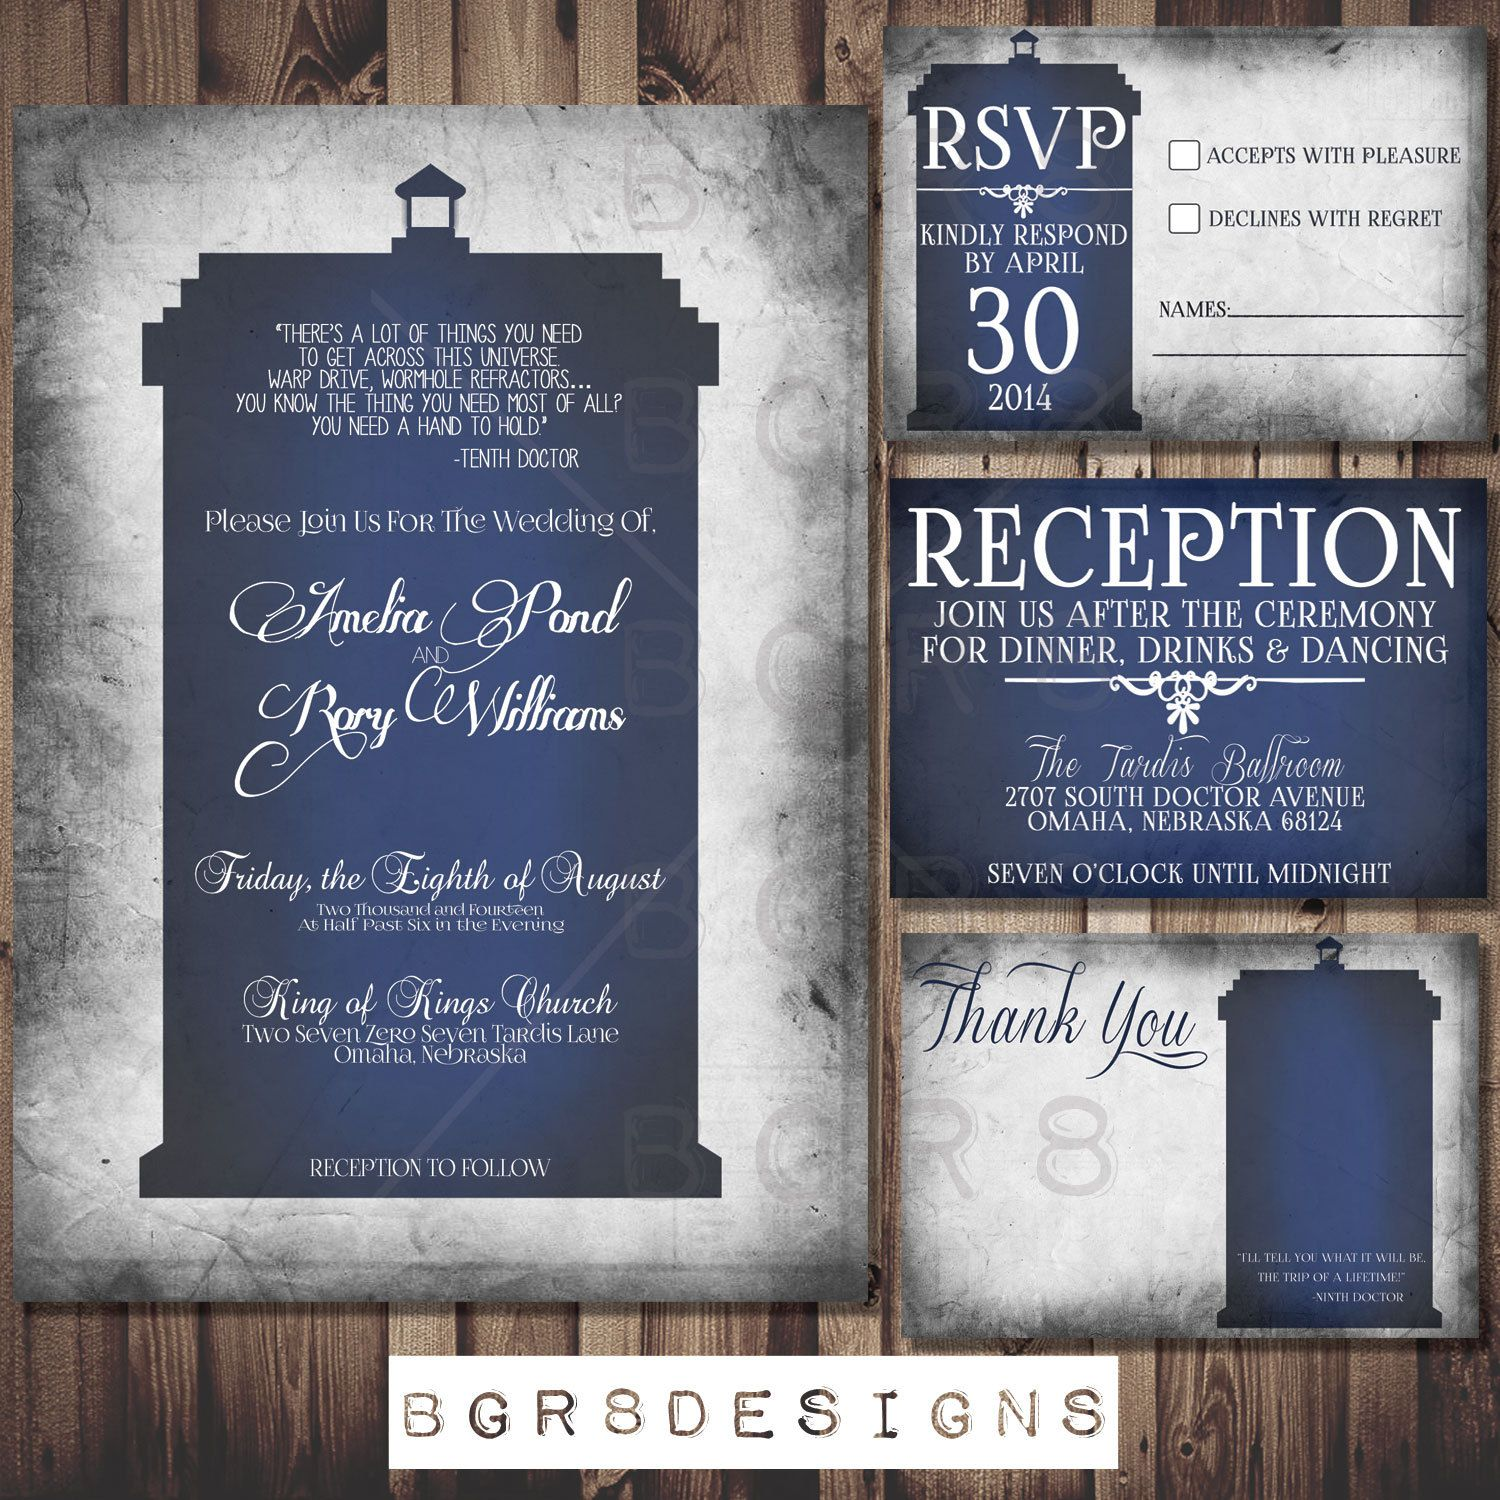 Exceptional Doctor Who TARDIS Wedding Invitation Set PRINTABLE By Bgr8Designs, $25.00